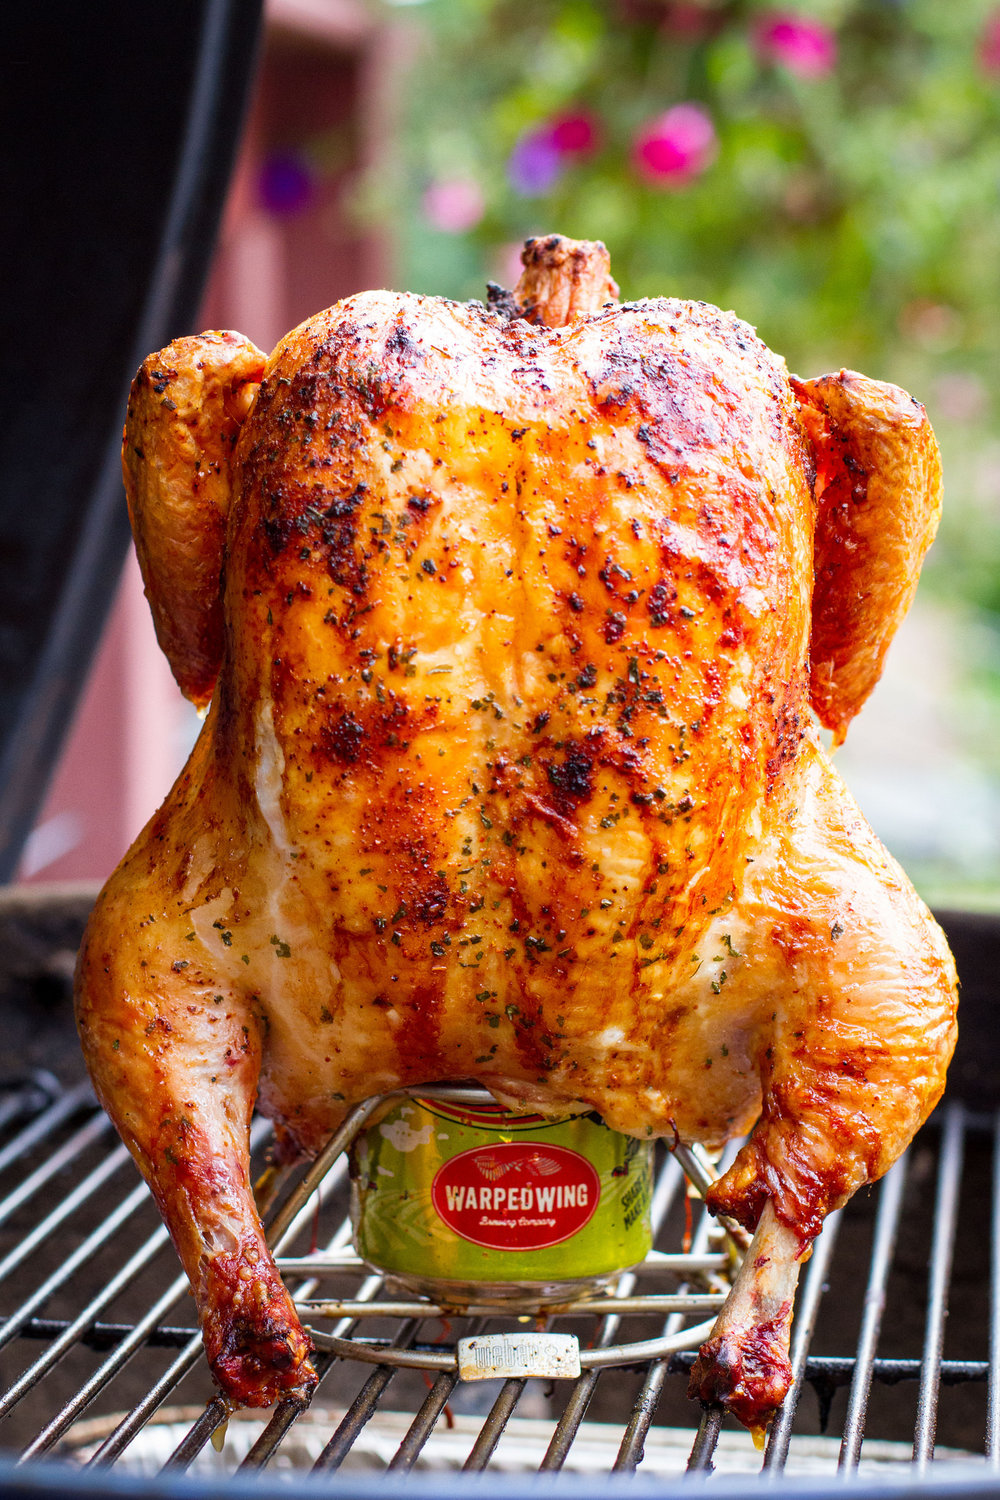 warped wing beer can chicken.jpg